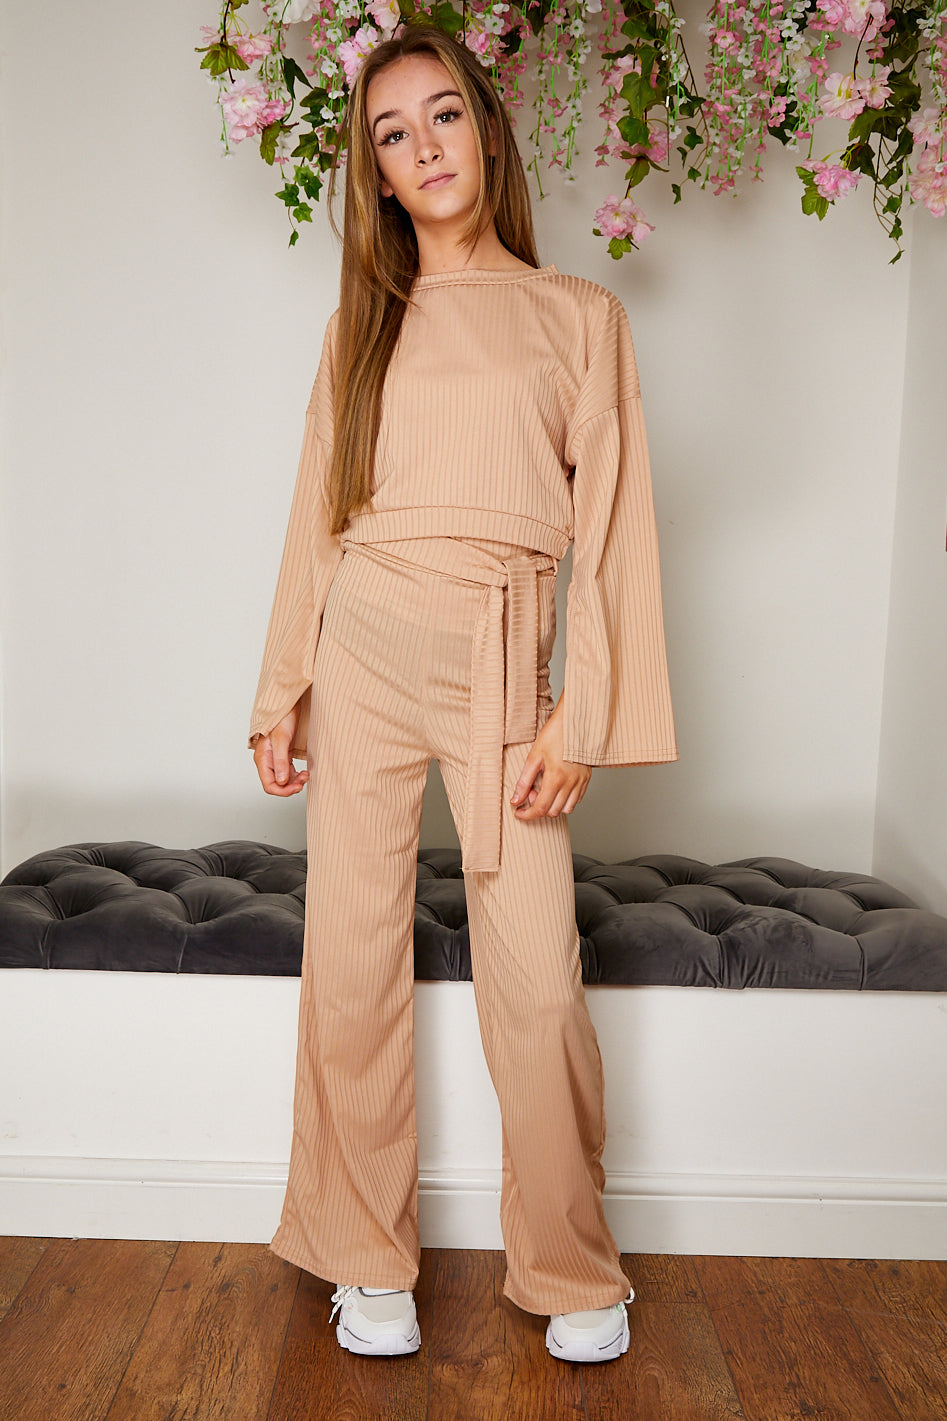 Split sleeve trouser and co ord set